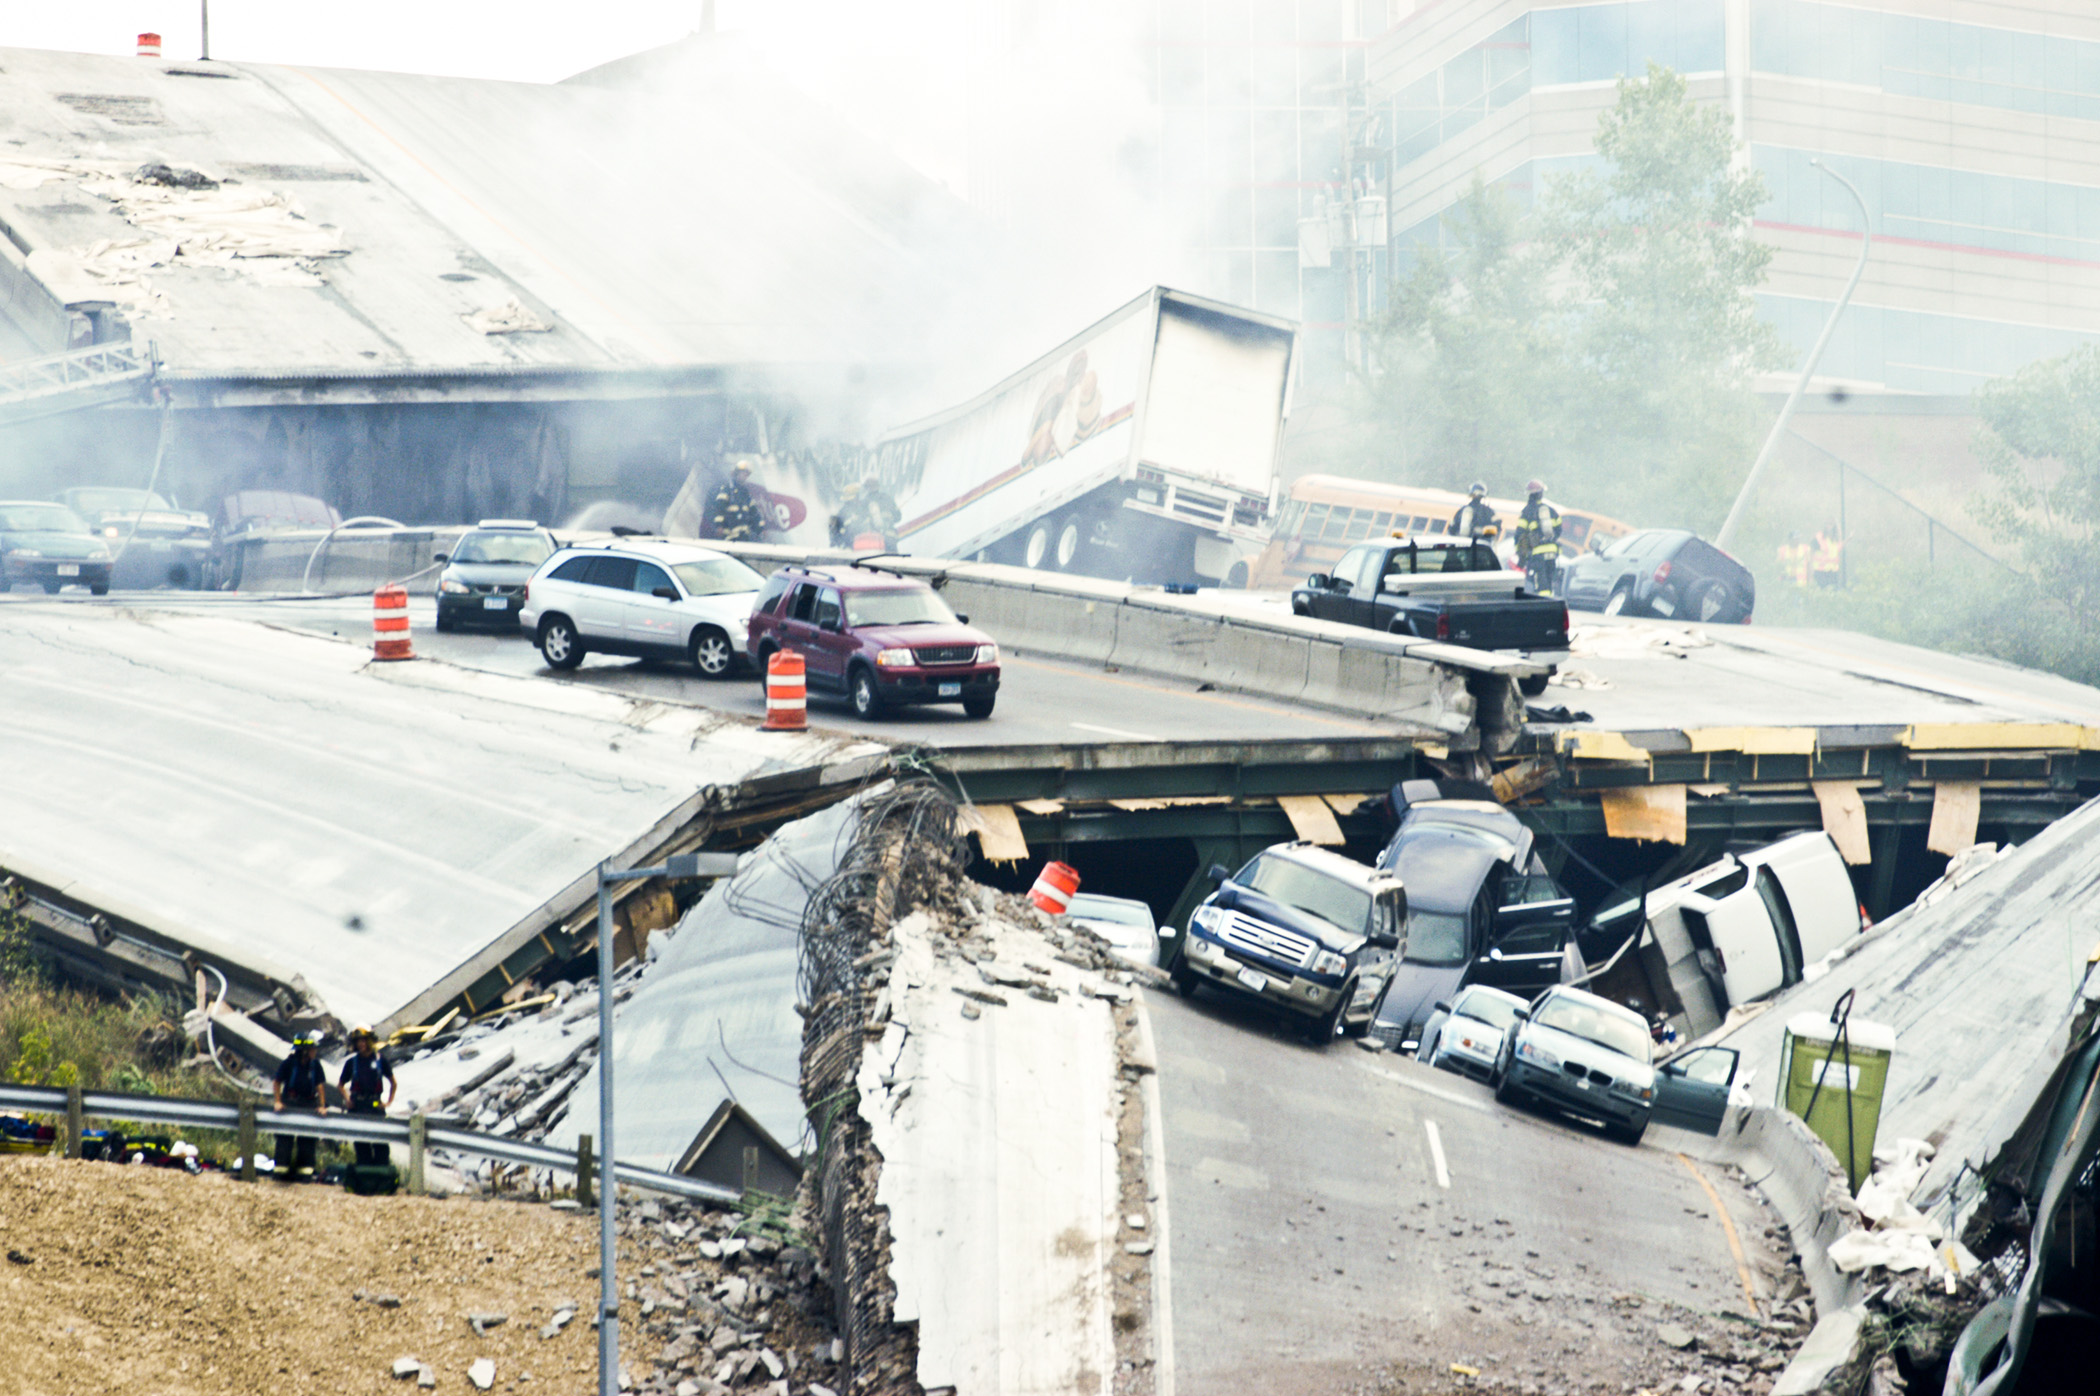 Firemen work to rescue victims of the 35W Bridge collapse August 1, 2007 in Minneapolis, MN. The collapse killed 13 people and left 145 injured.